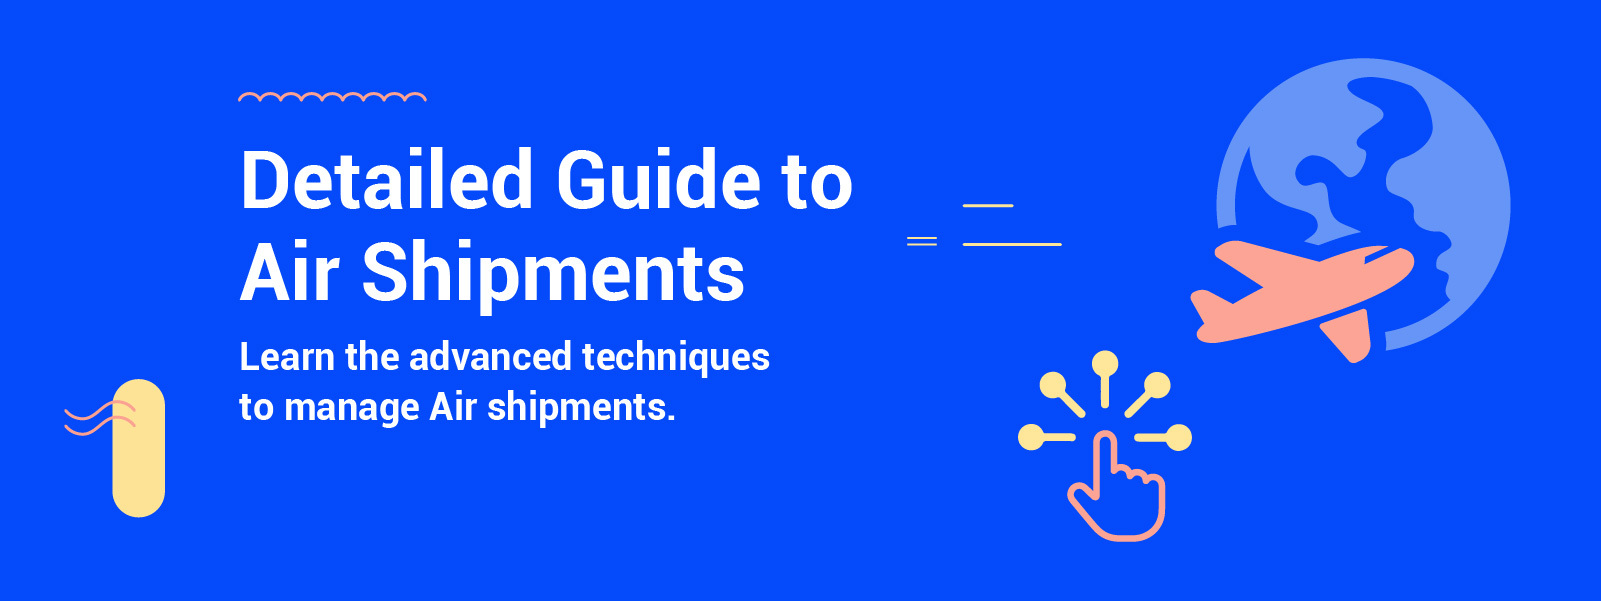 Complete Guide to Air Shipments: Everything Exporters/Importers Need to Know